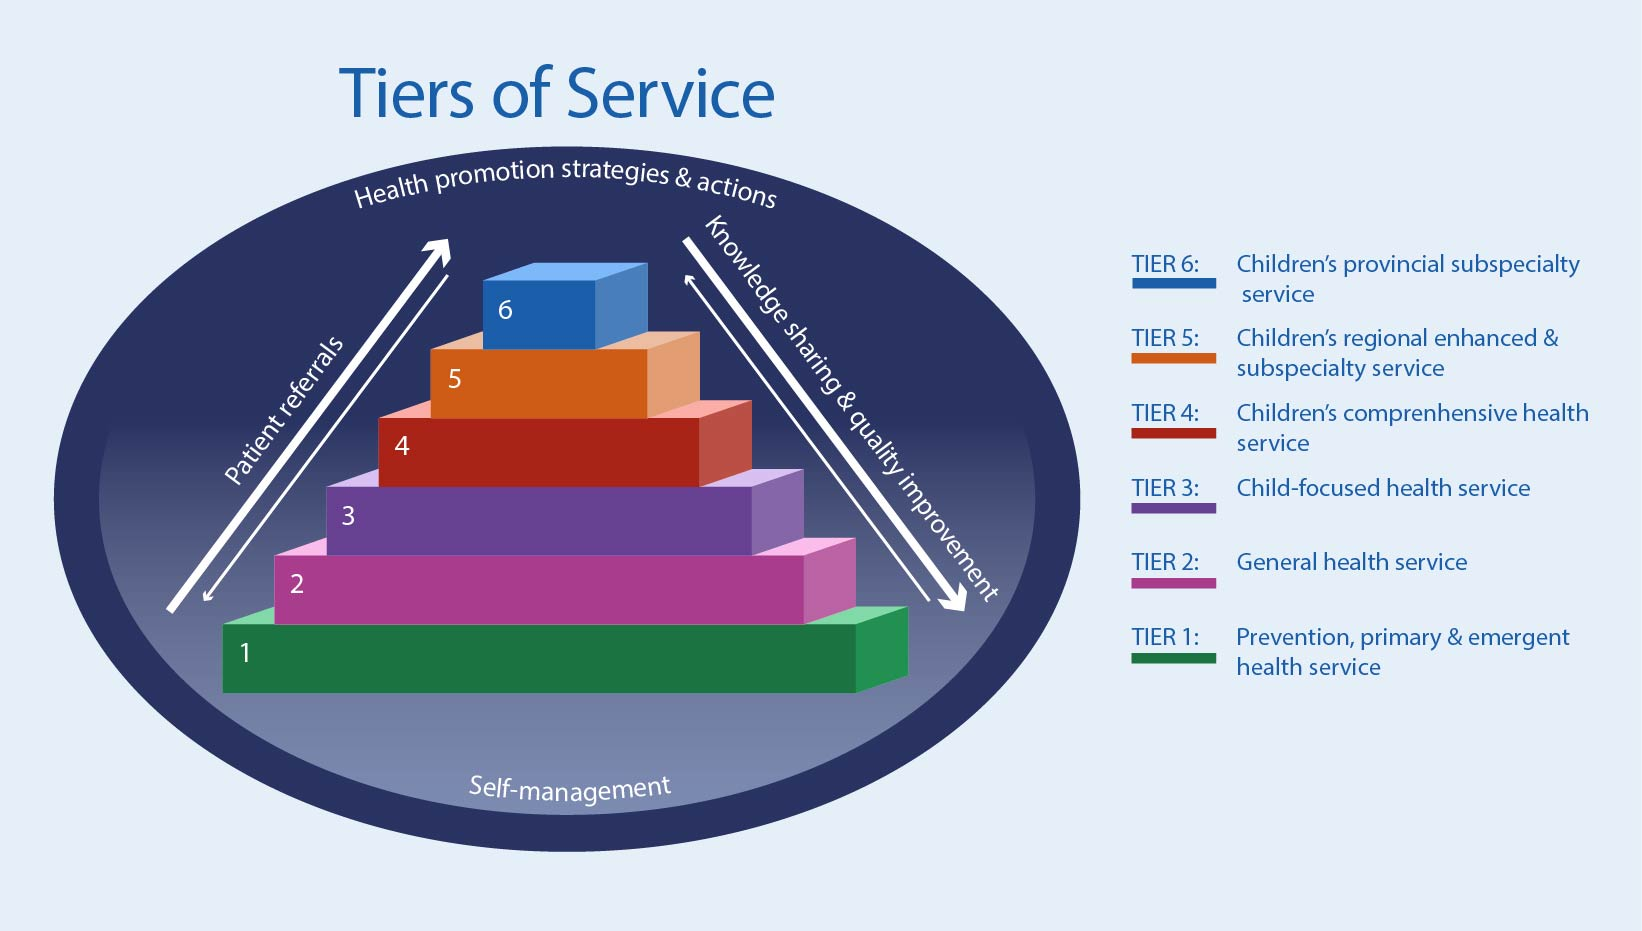 Tiers of Service 1 to 6